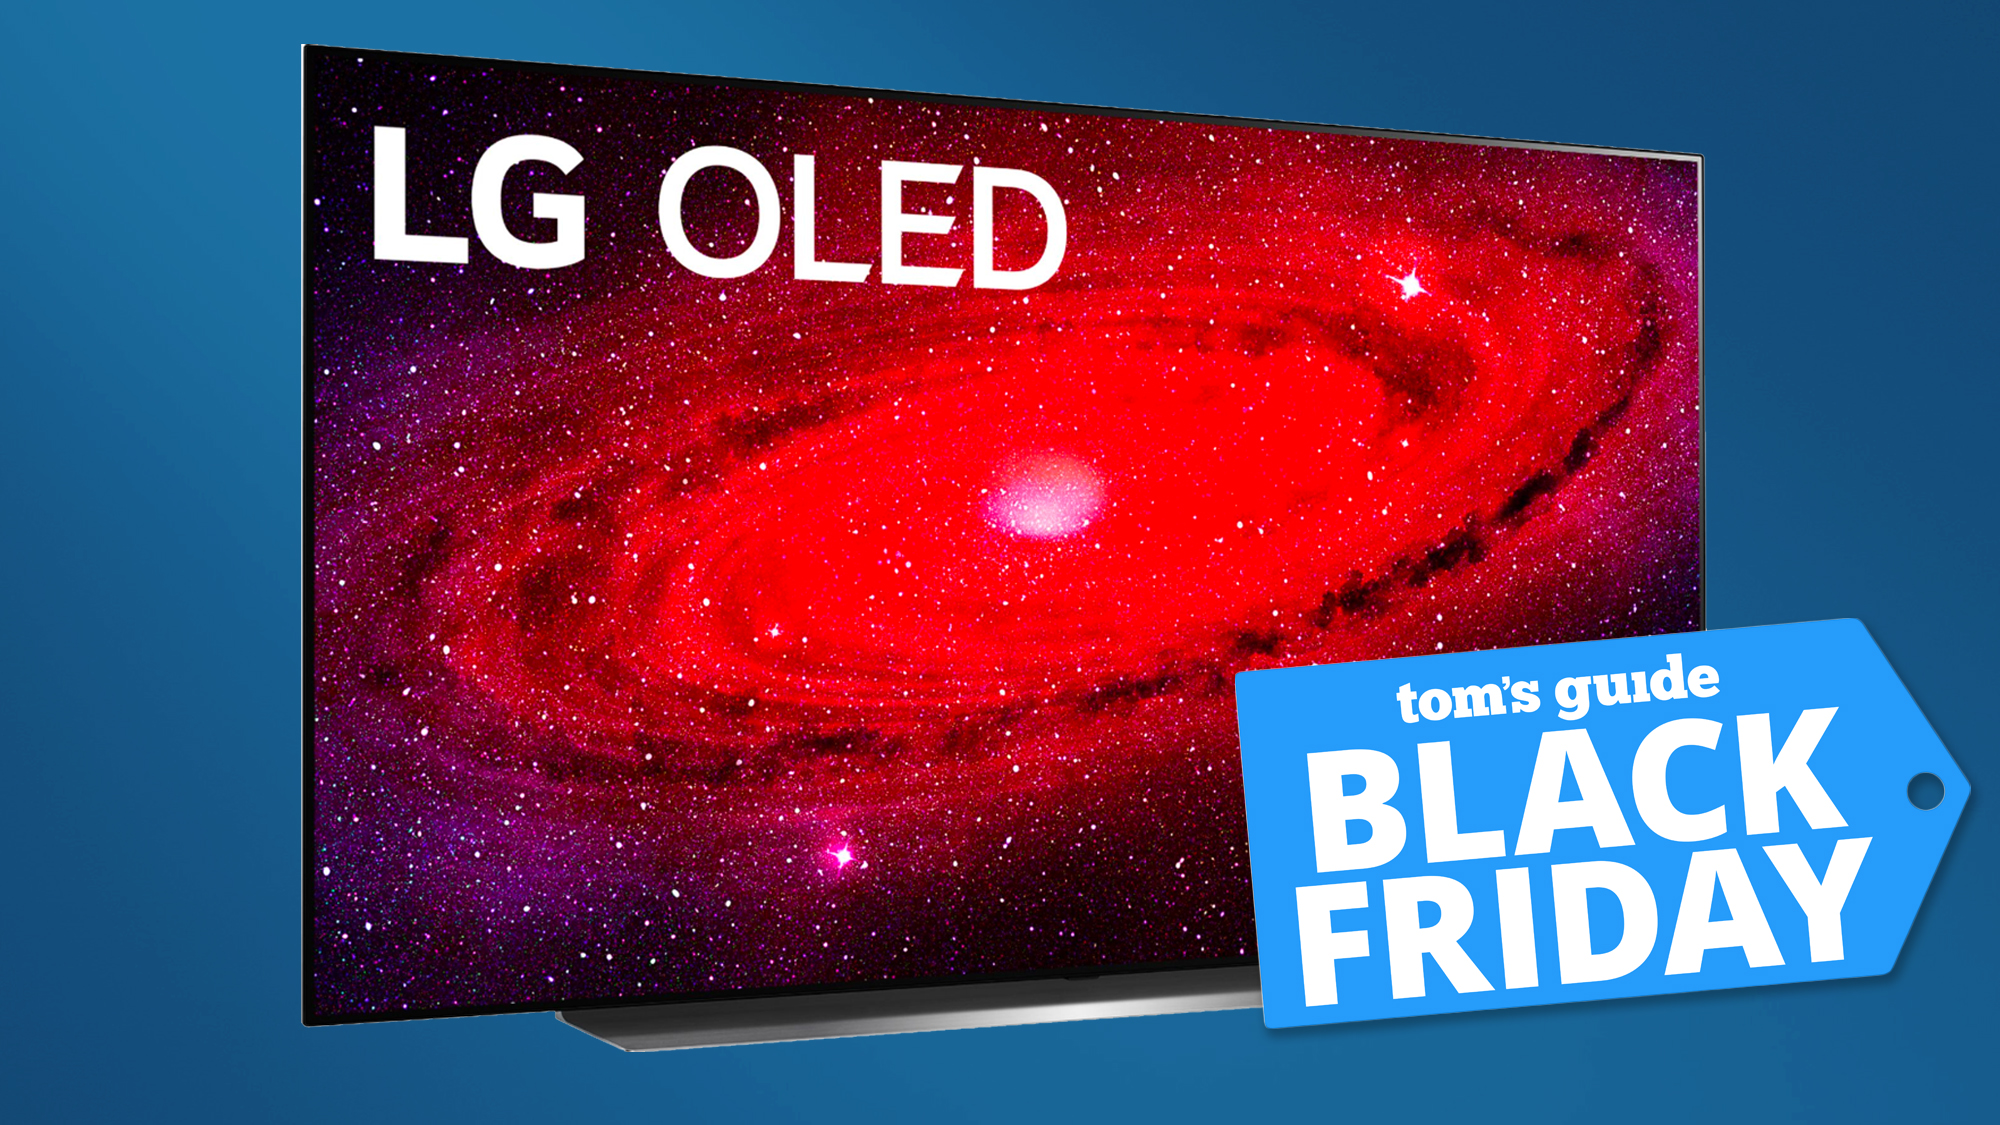 Black Friday Tv Deal To Beat Lg Oled Is 600 Off Right Now Tom S Guide